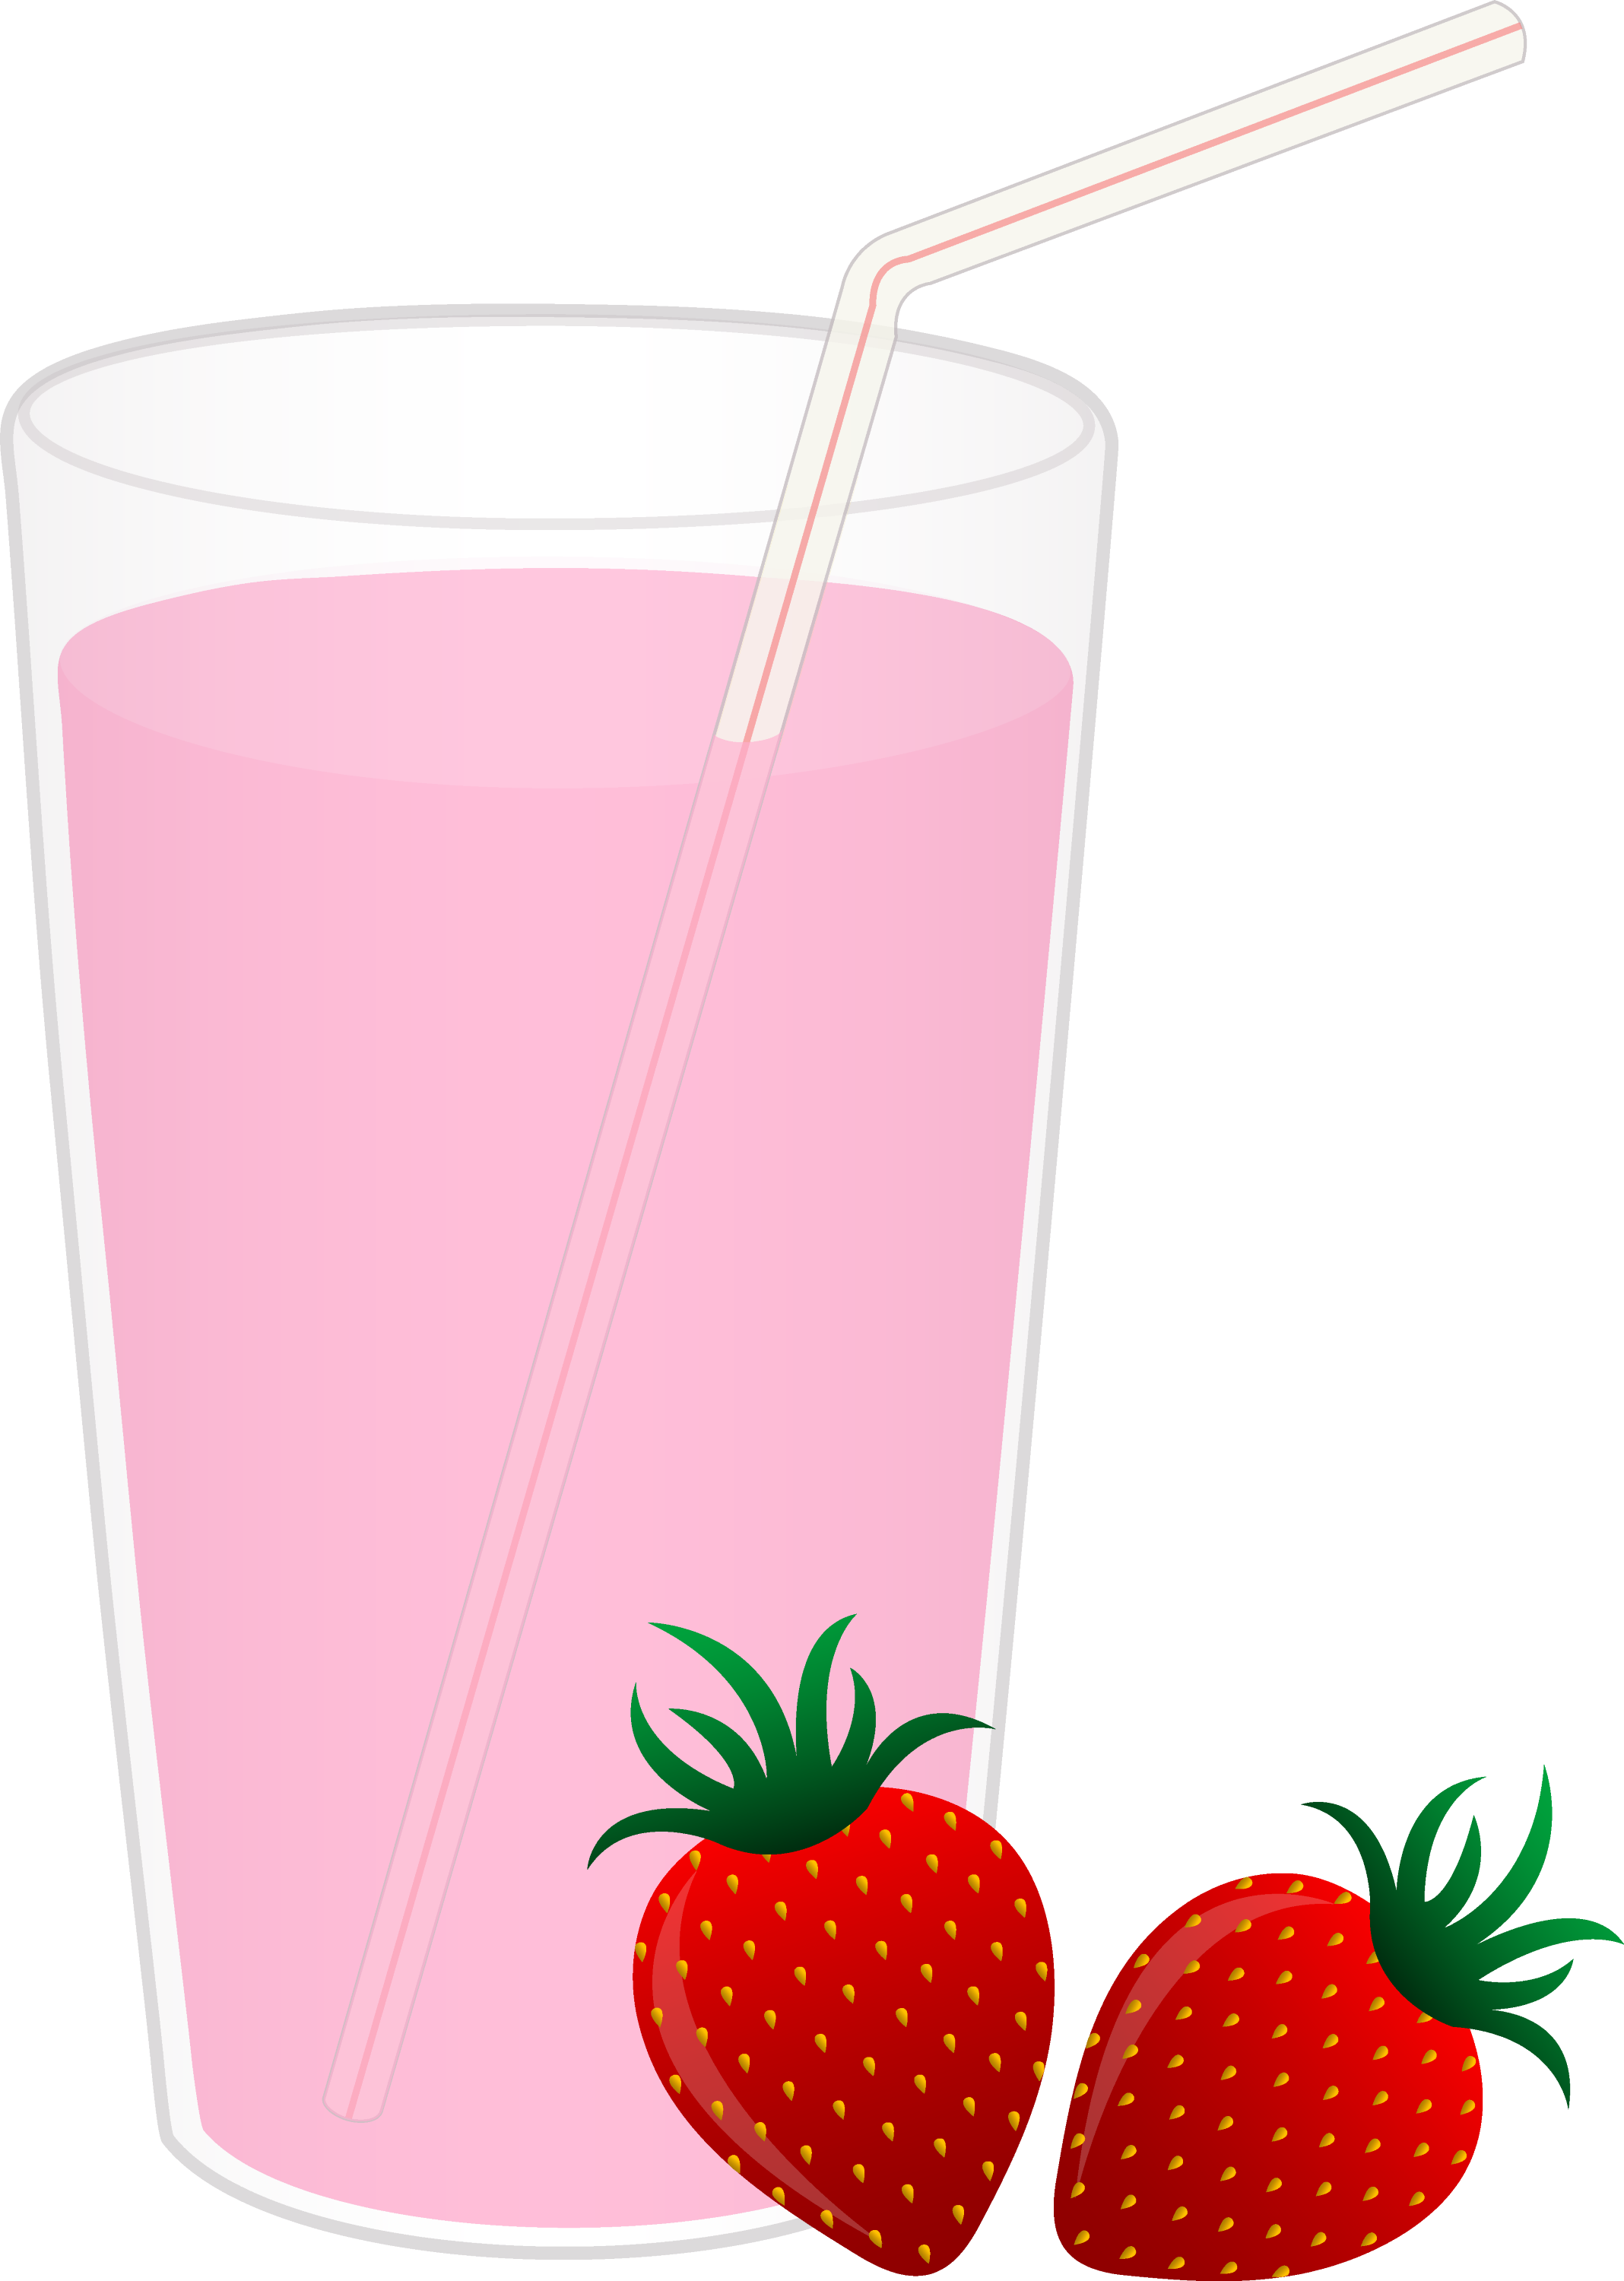 pink strawberry pink milk an strawberry wal homemade strawberry milk ...